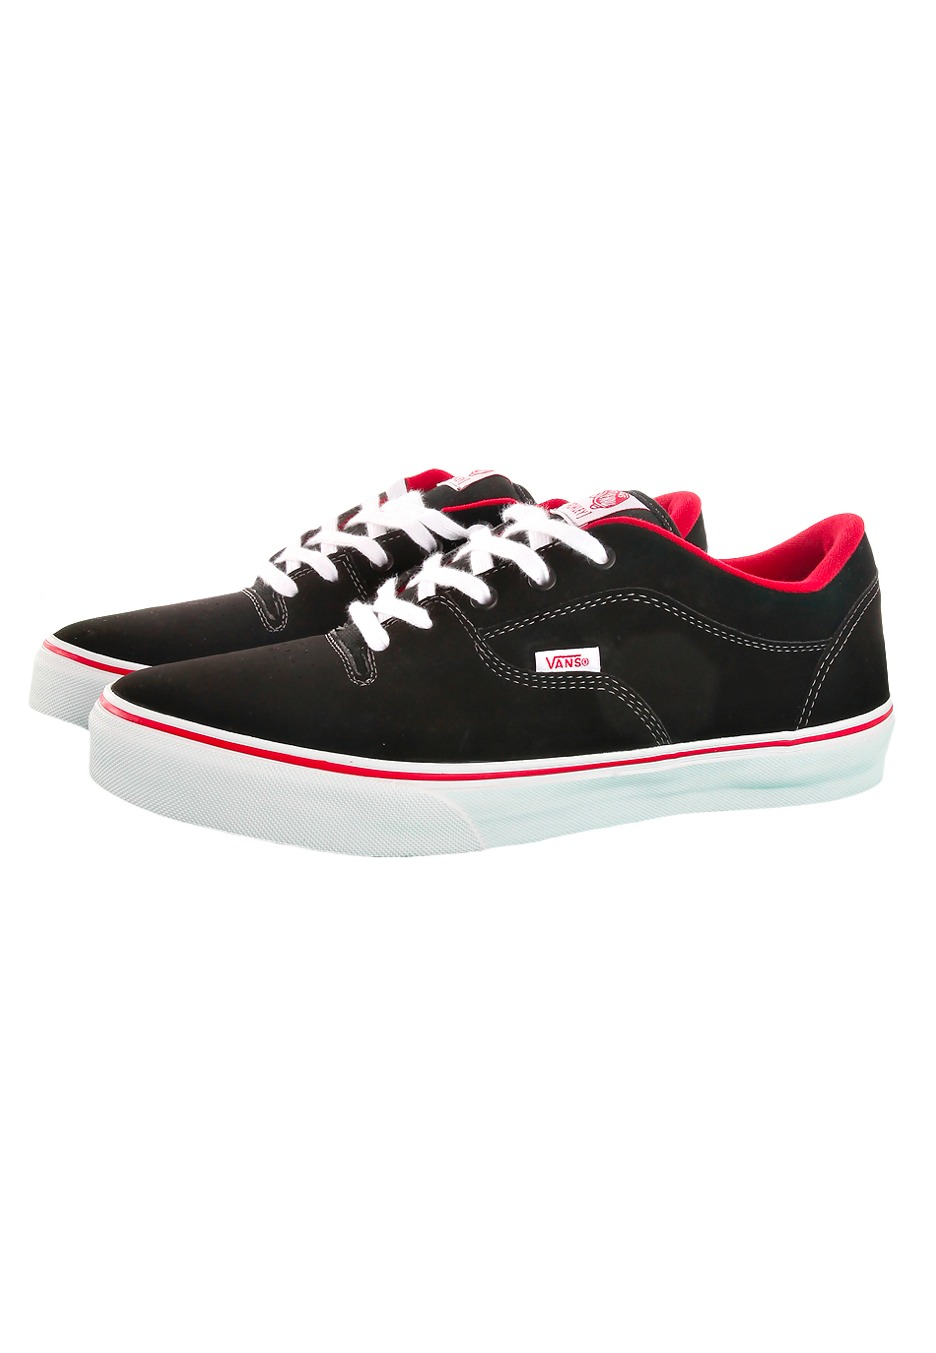 a10b85f46f Vans - Rowley Style 99s Black White Synthetic - Kengät - Impericon ...